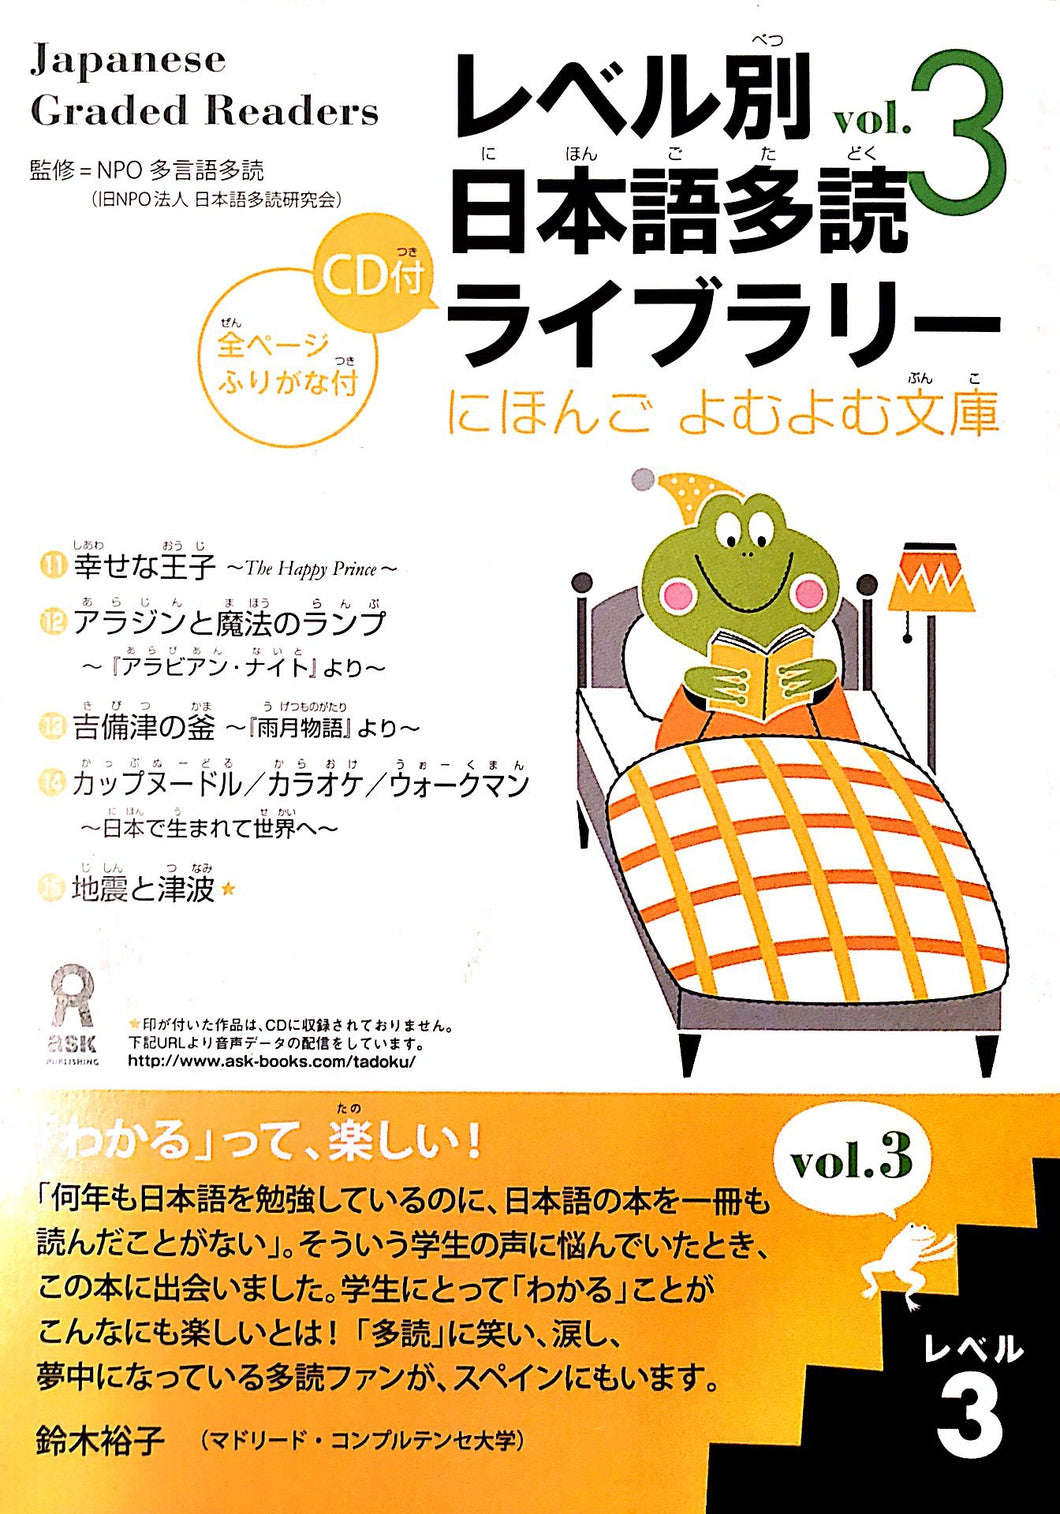 Japanese Graded Readers Level 3 Volume 3 - The Japan Shop